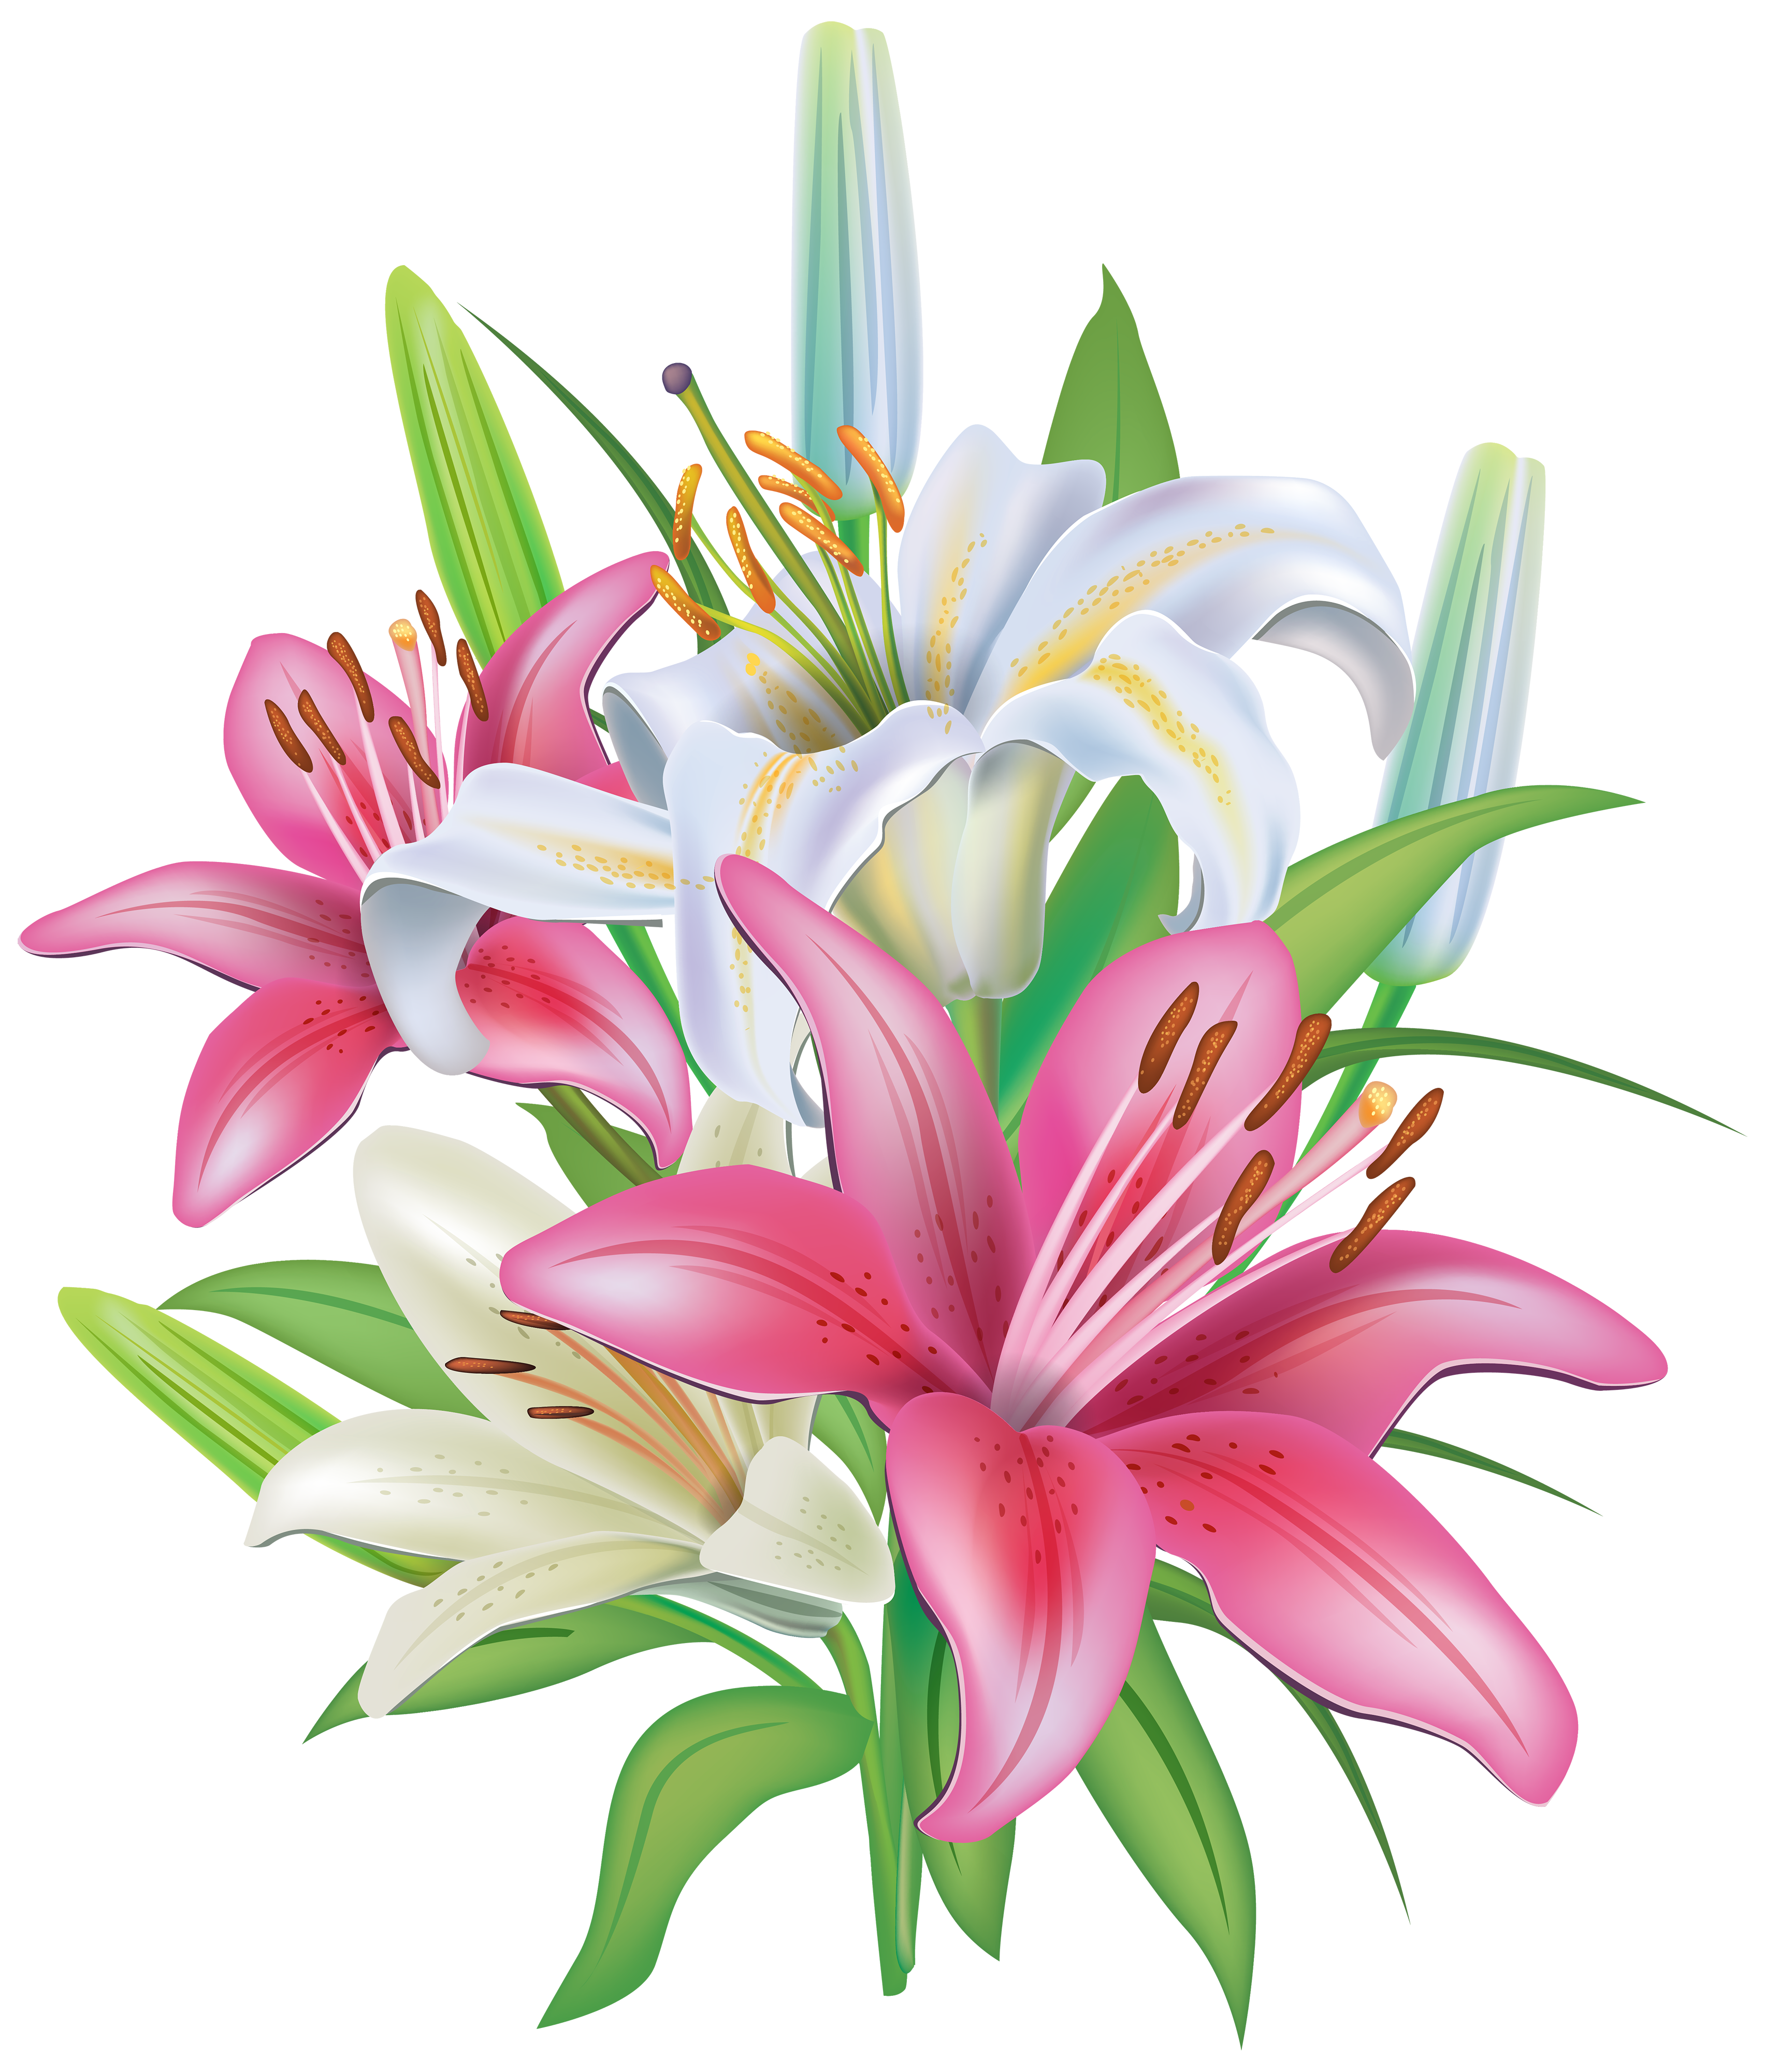 Lily flower clipart png black and white download Lilies Flowers Decoration PNG Clipart Image | Gallery Yopriceville ... png black and white download